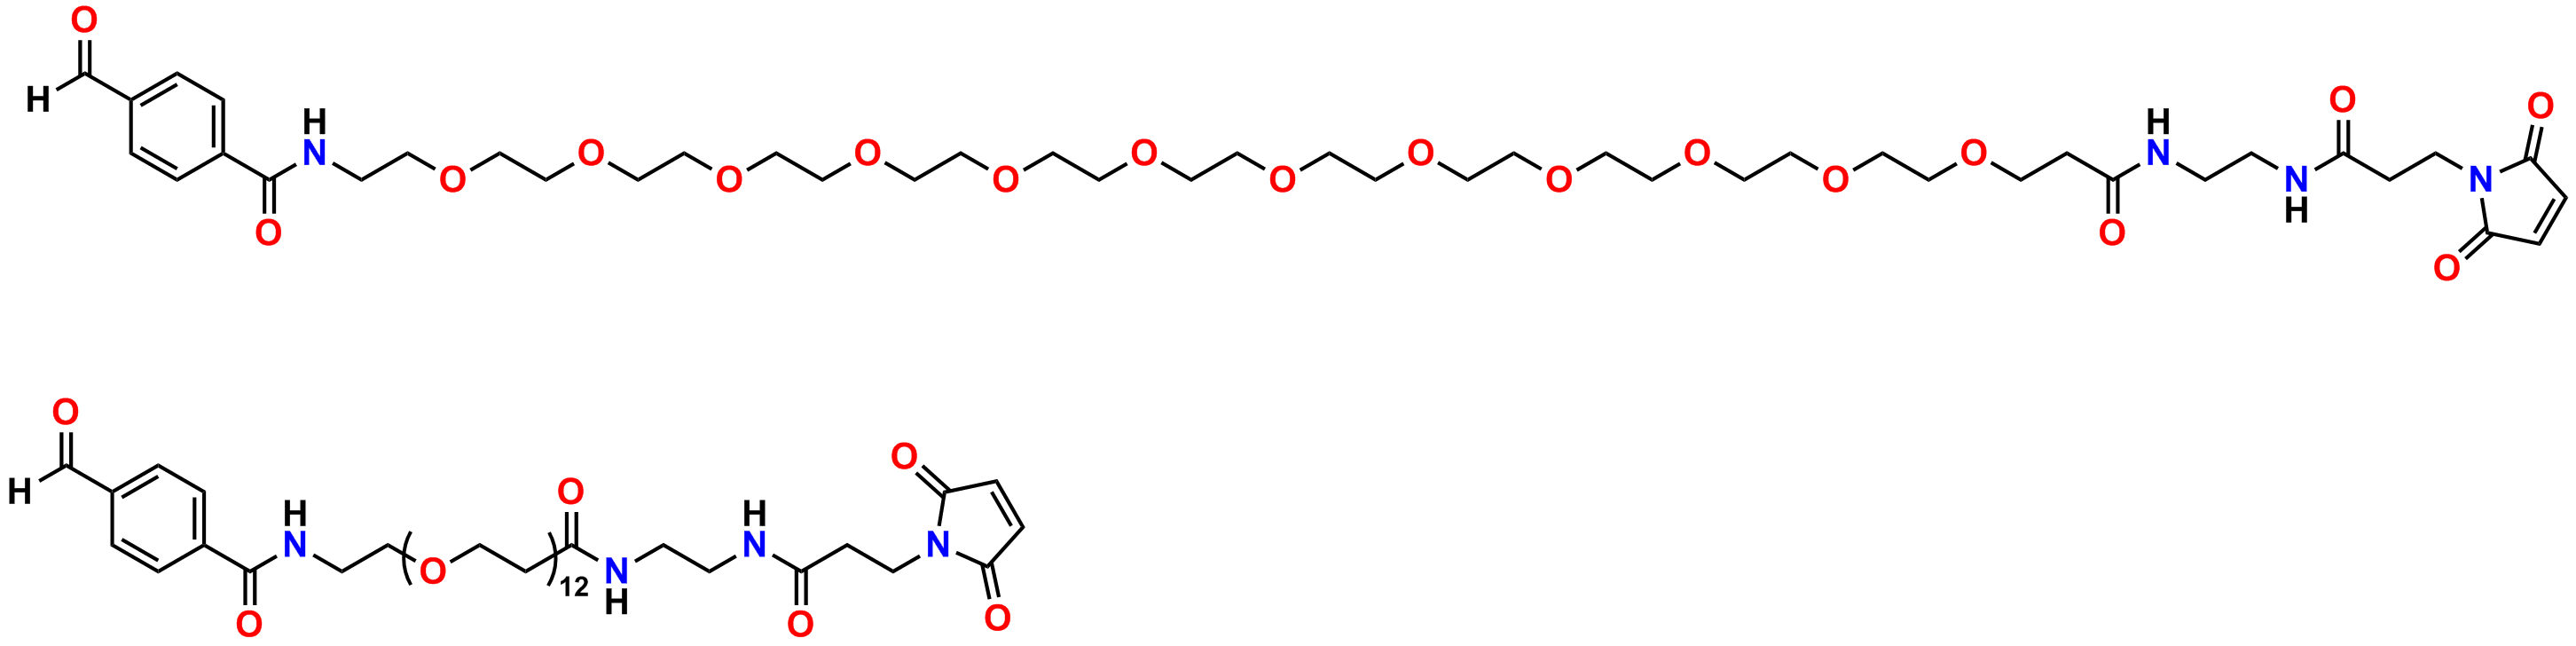 Figure 7 shows the full-length (top) and abbreviated (bottom) structure of PN10075, 4-formyl-benzamido-dPEG®12-EDA-MAL. This maleimide crosslinker product reacts with amines to form imines (Schiff bases), hydrazides to form hydrazones, and aminooxy compounds to form oxime bonds. Please see the text for details.